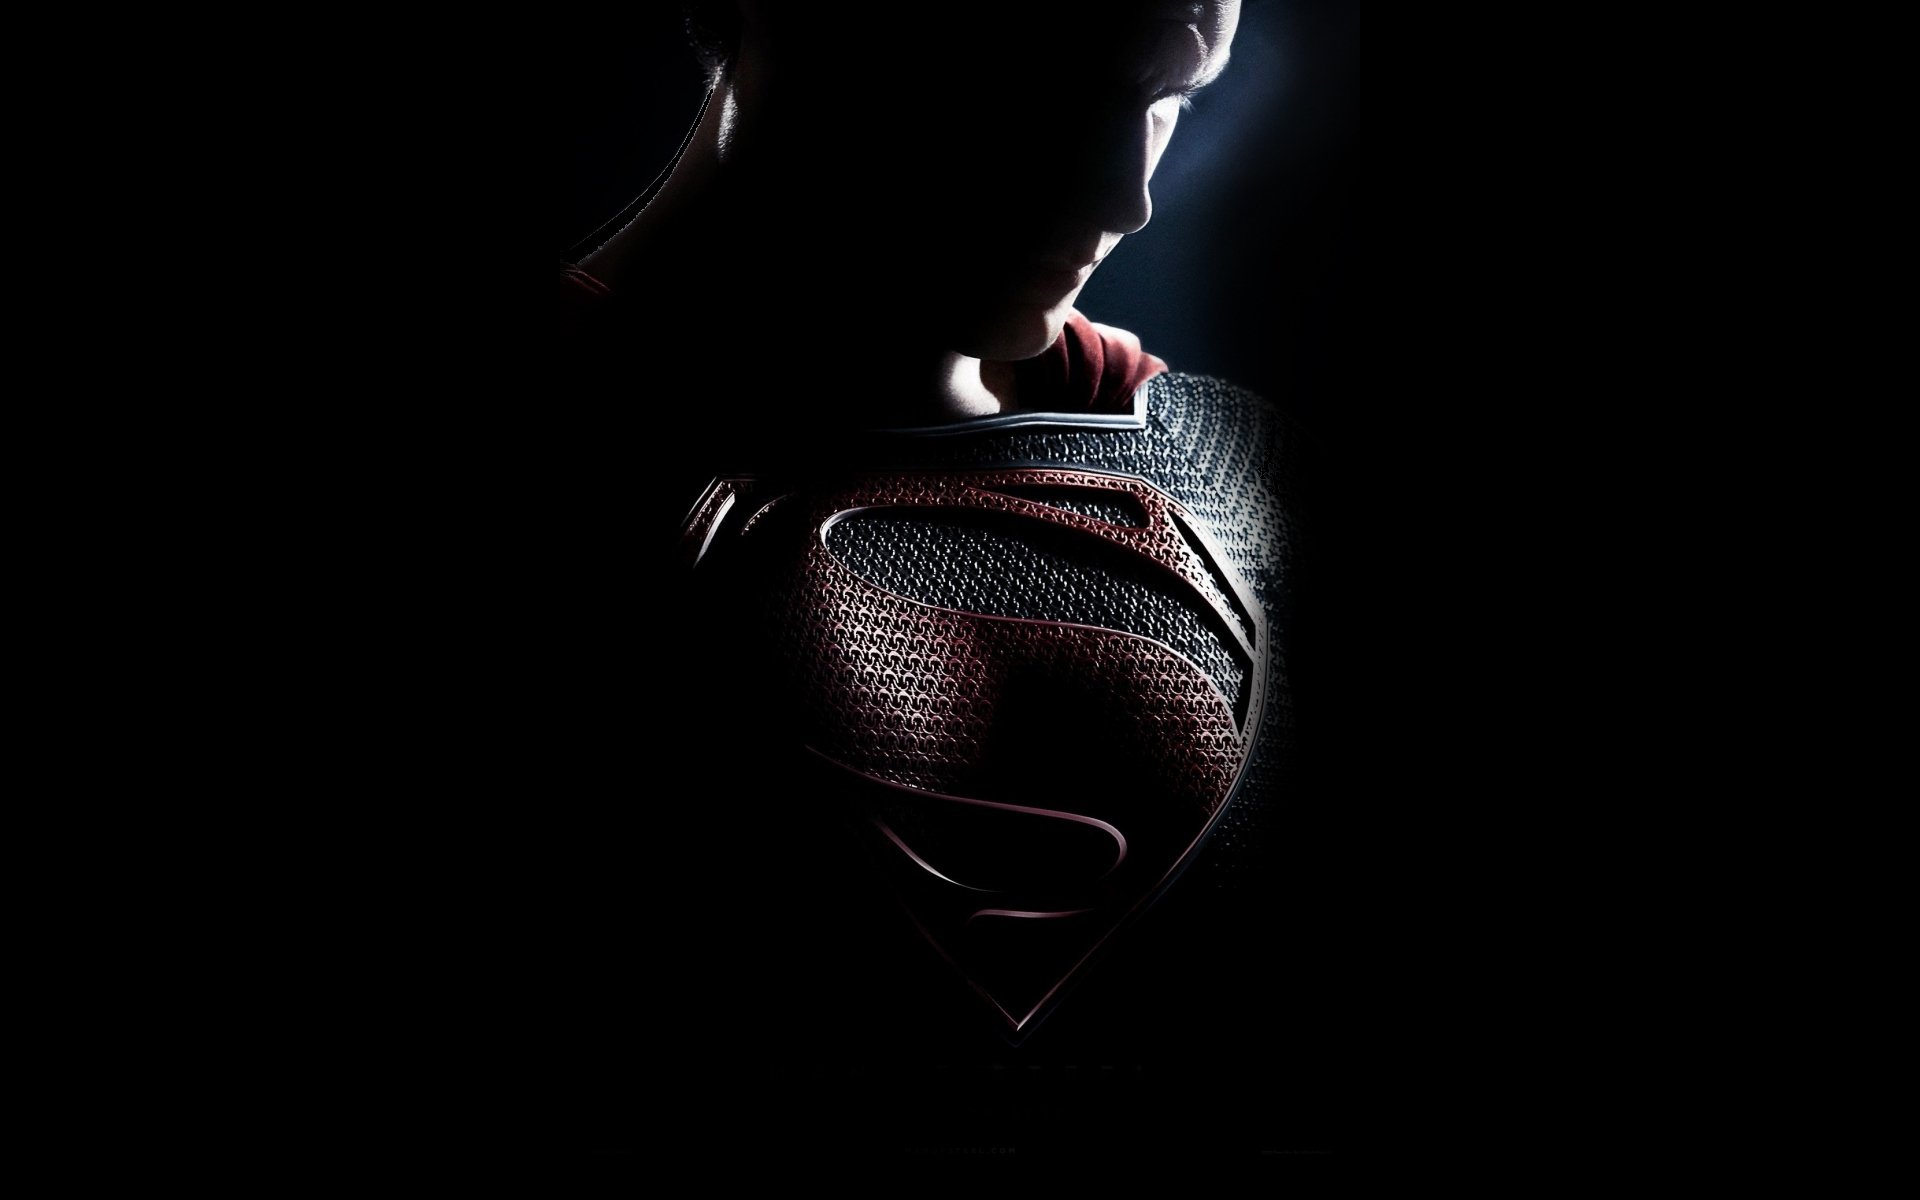 92 Man Of Steel HD Wallpapers | Backgrounds - Wallpaper Abyss